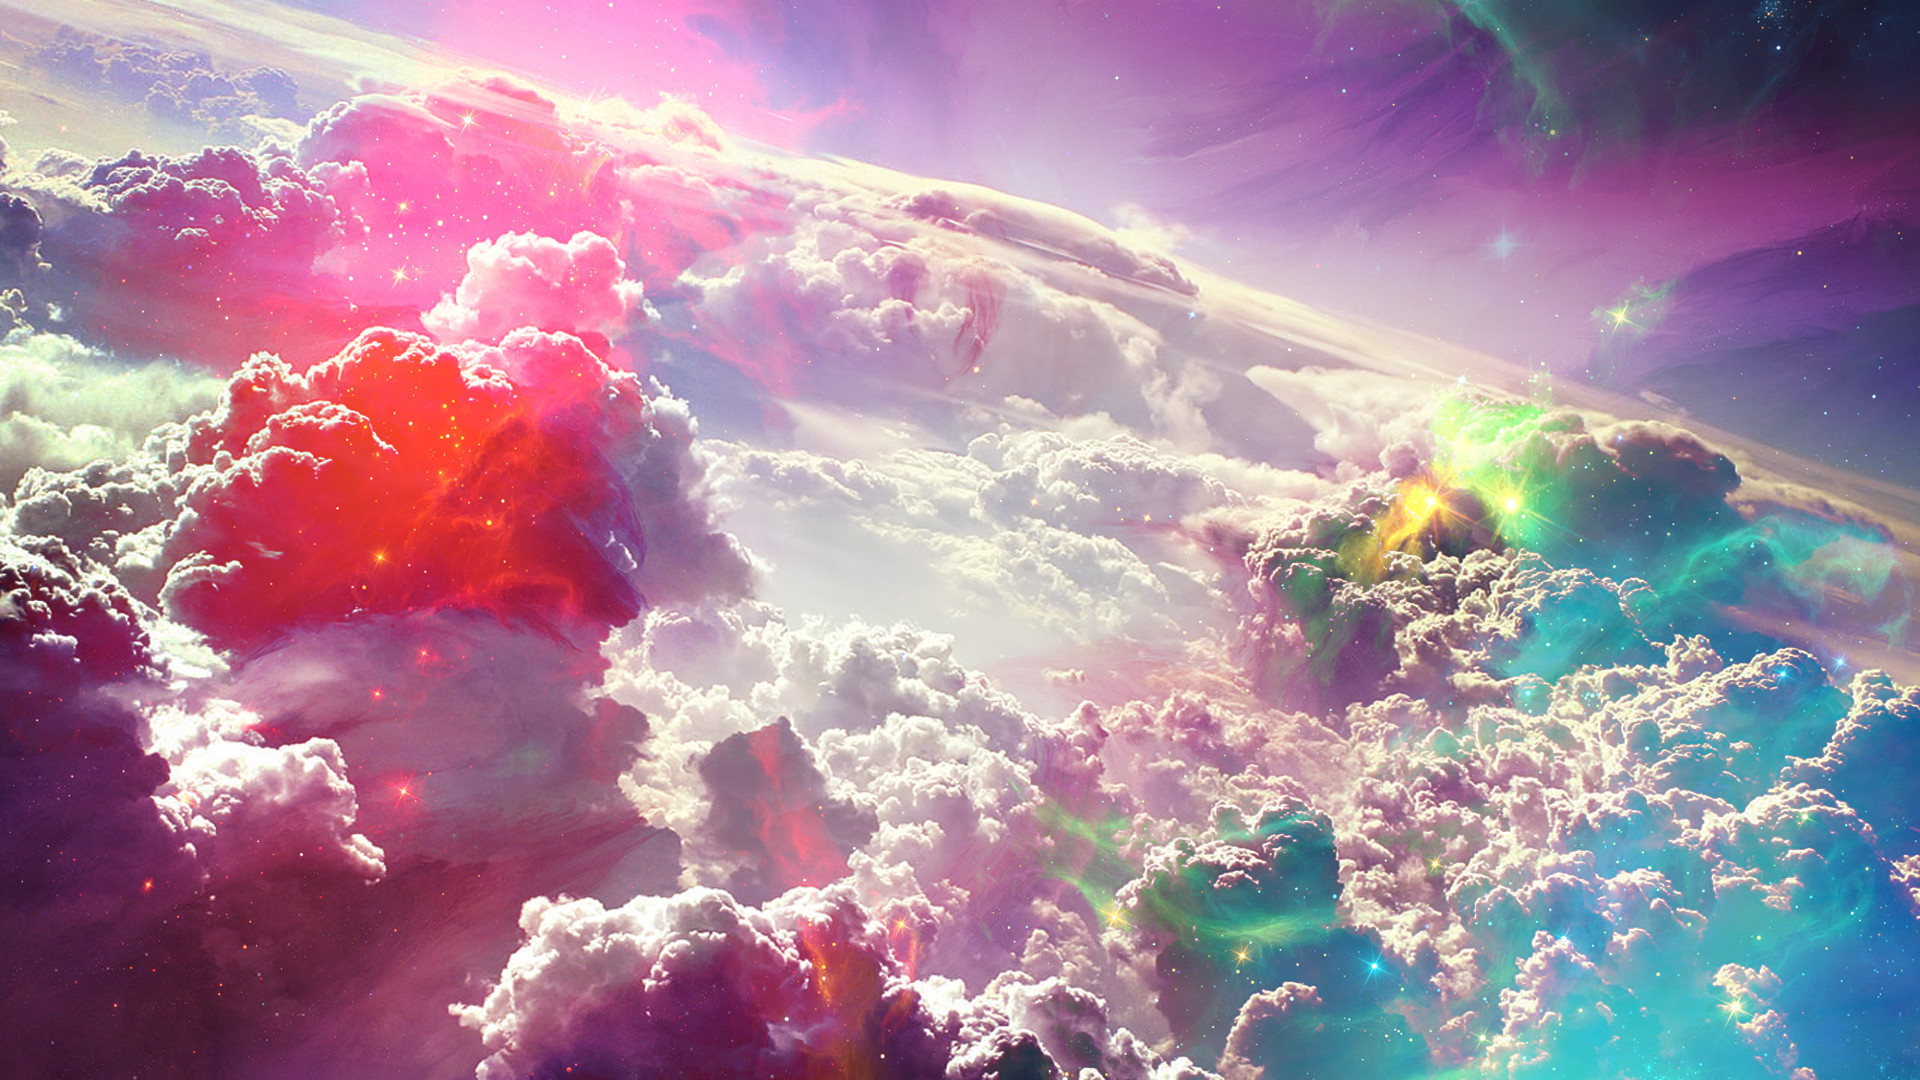 Colorful Fantasy Clouds Art HD Wallpaper – New HD Wallpapers